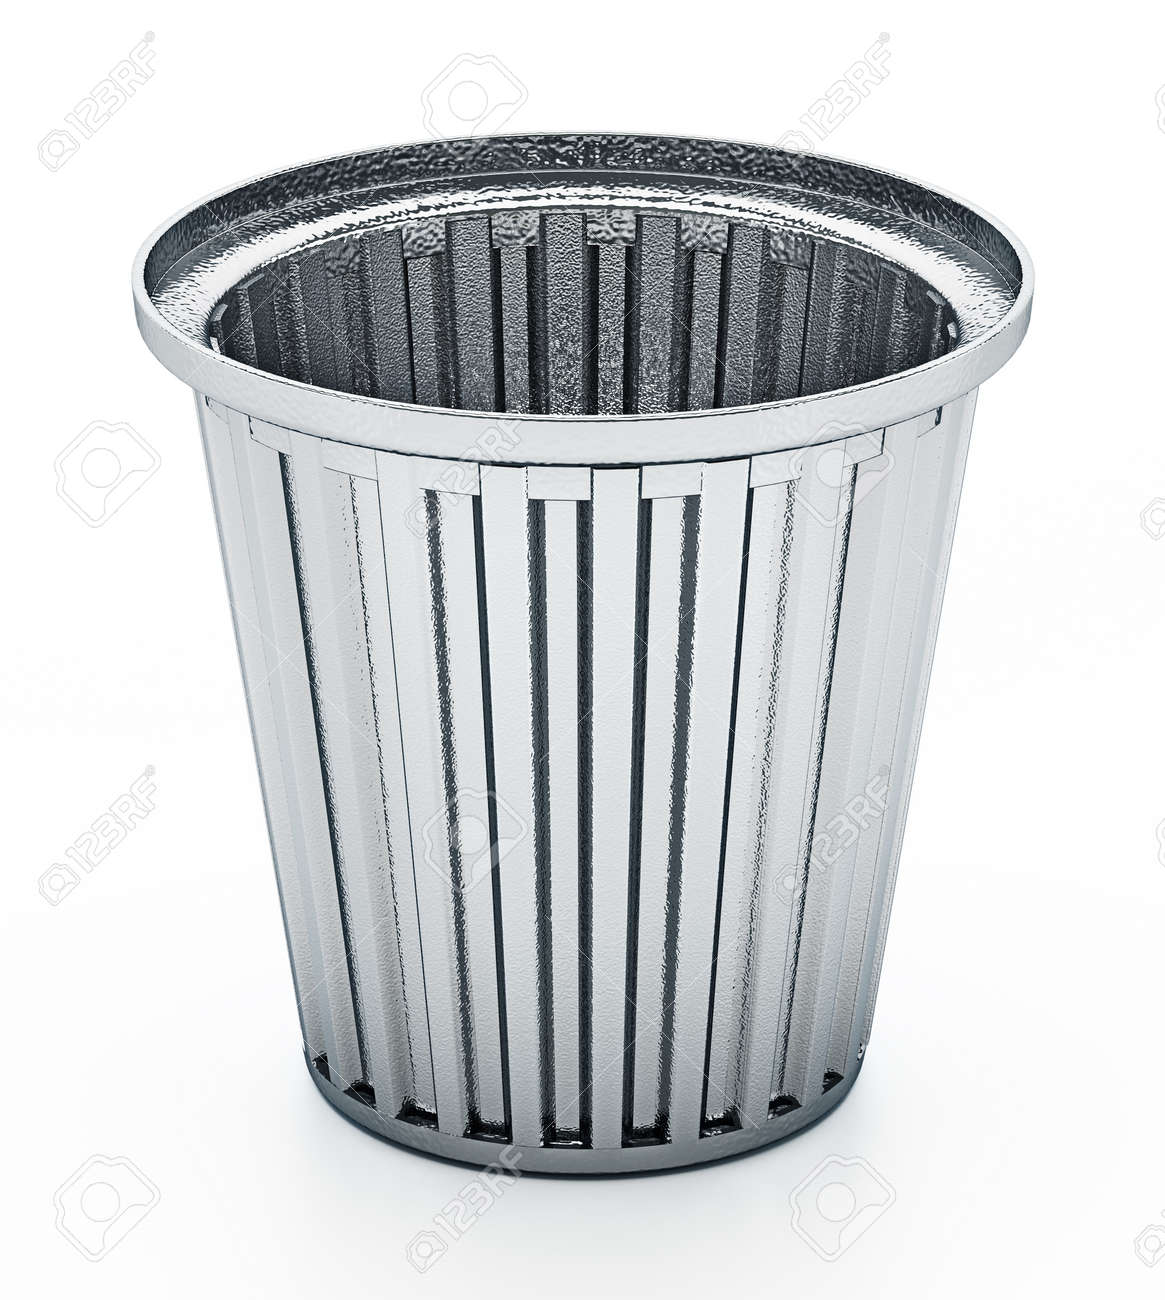 Steel trash can isolated on white background. 3D illustration. - 171907045